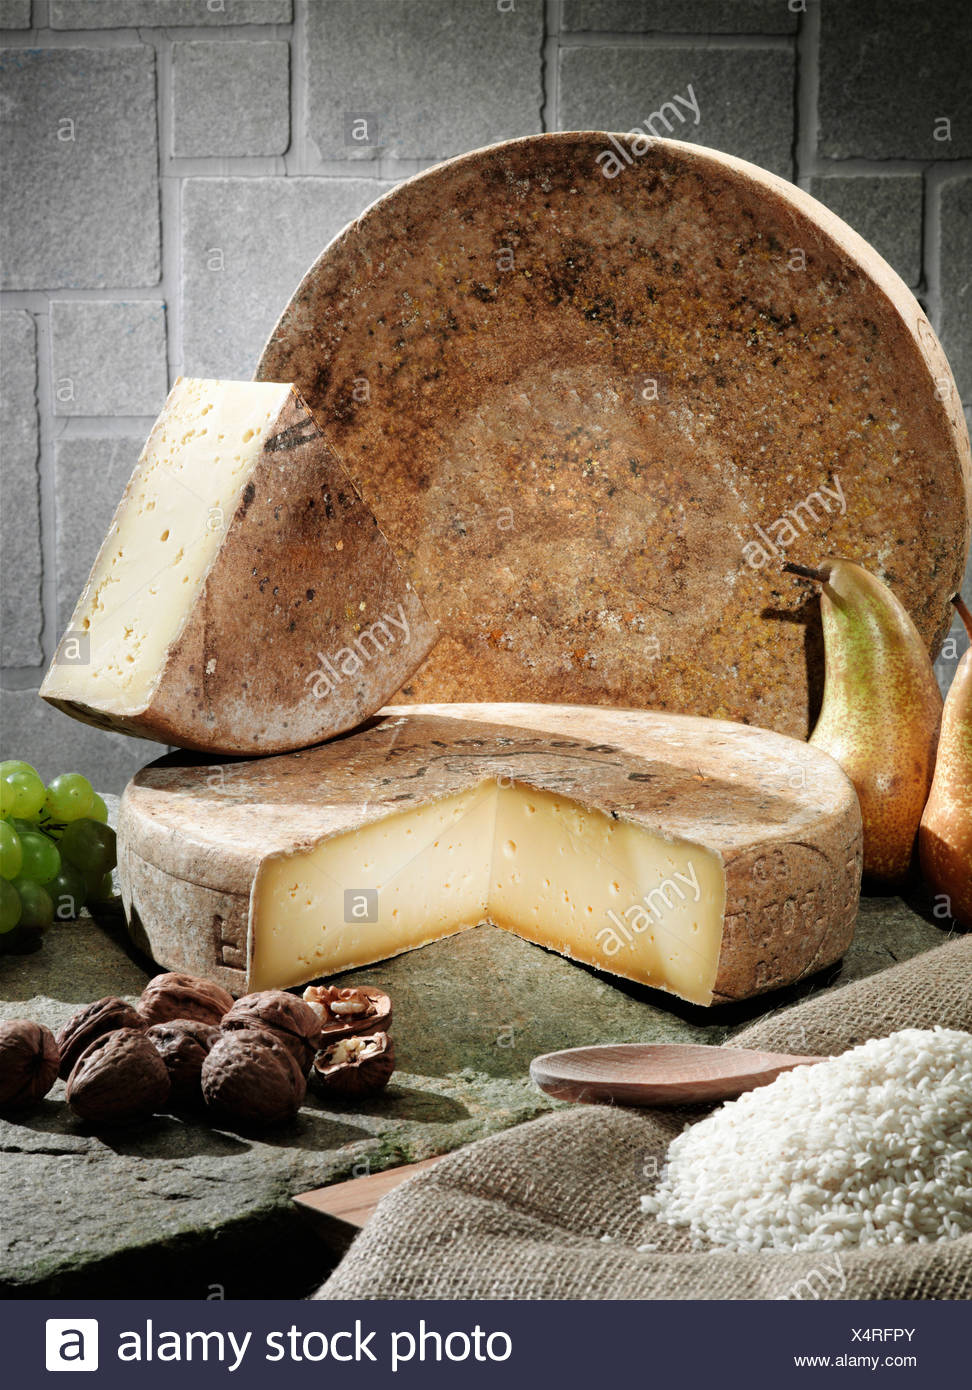 Cheese, fruit and grains on table - Stock Image